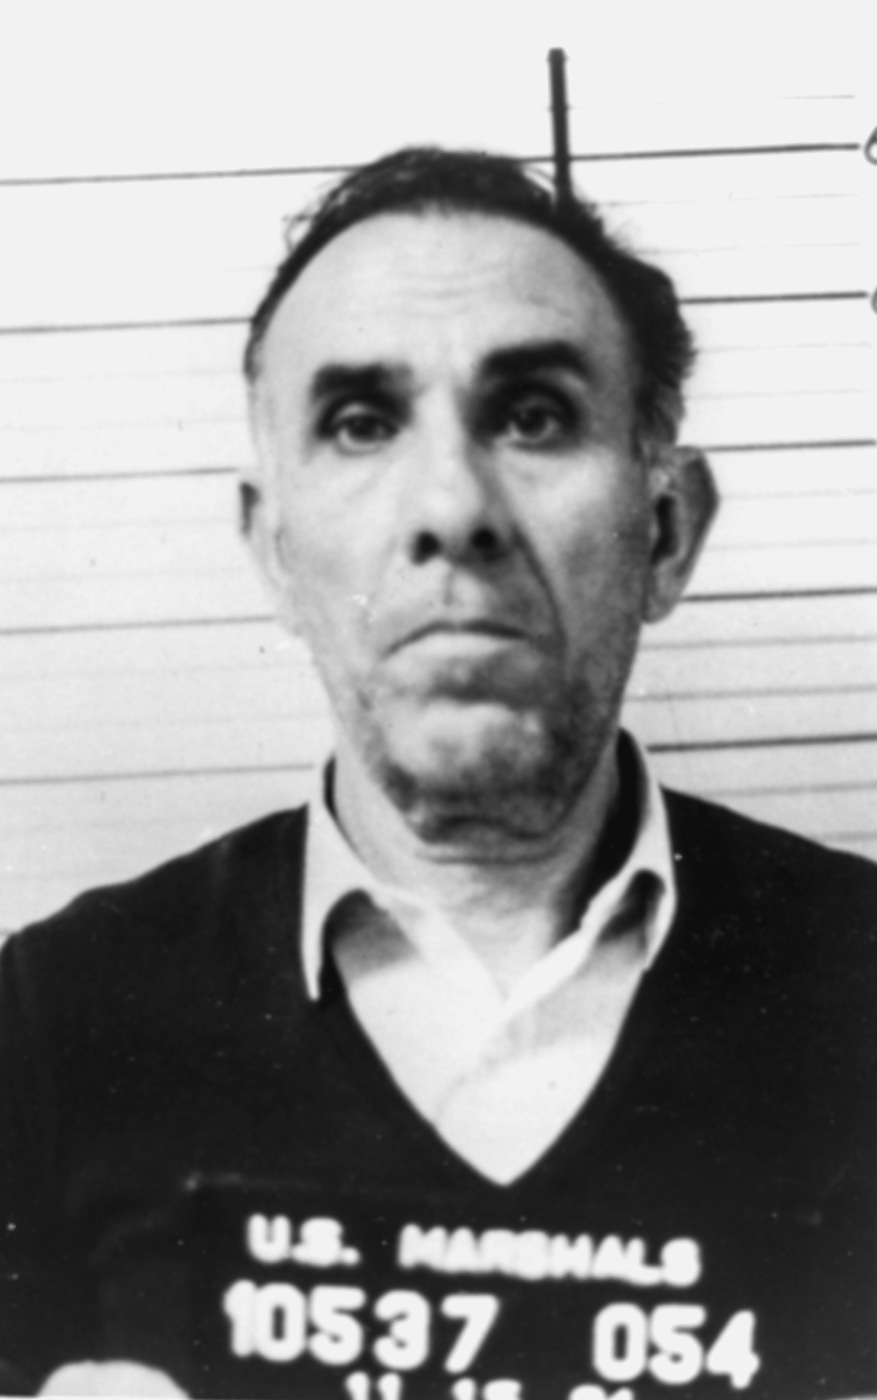 1984 U.S. Marshals arrest photo of Gaetano Badalamenti, part of the Pizza Connection case.